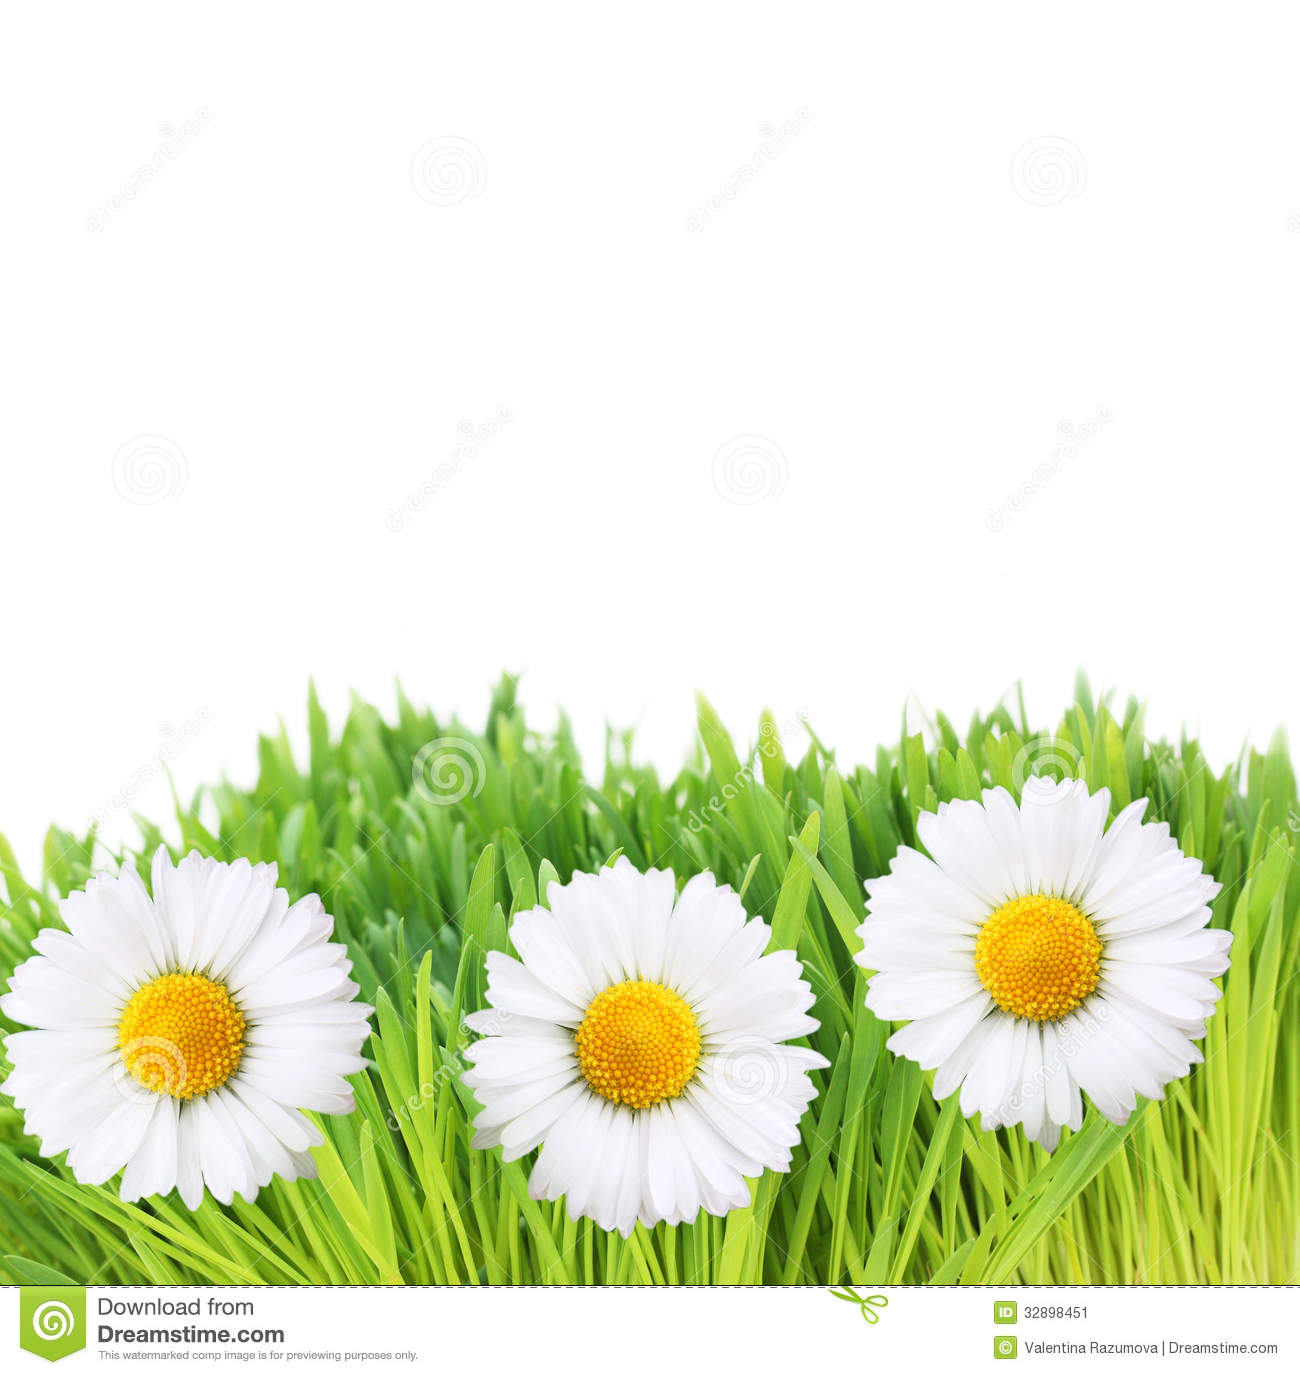 Fresh green water grass flowers texture stock photo image 59484830 fresh green grass and daisy flowers stock image dhlflorist Image collections